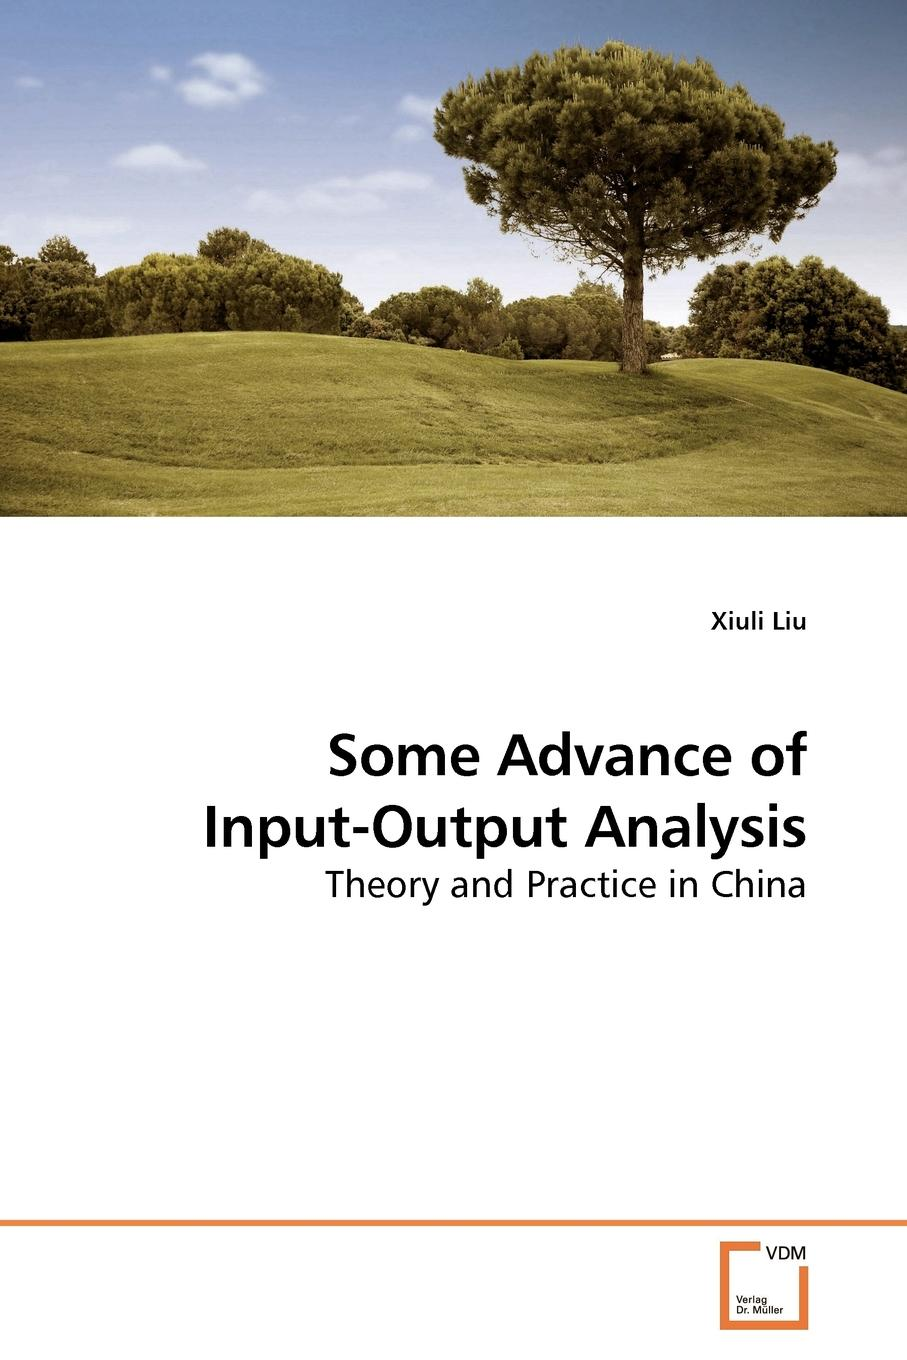 купить Xiuli Liu Some Advance of Input-Output Analysis по цене 9339 рублей